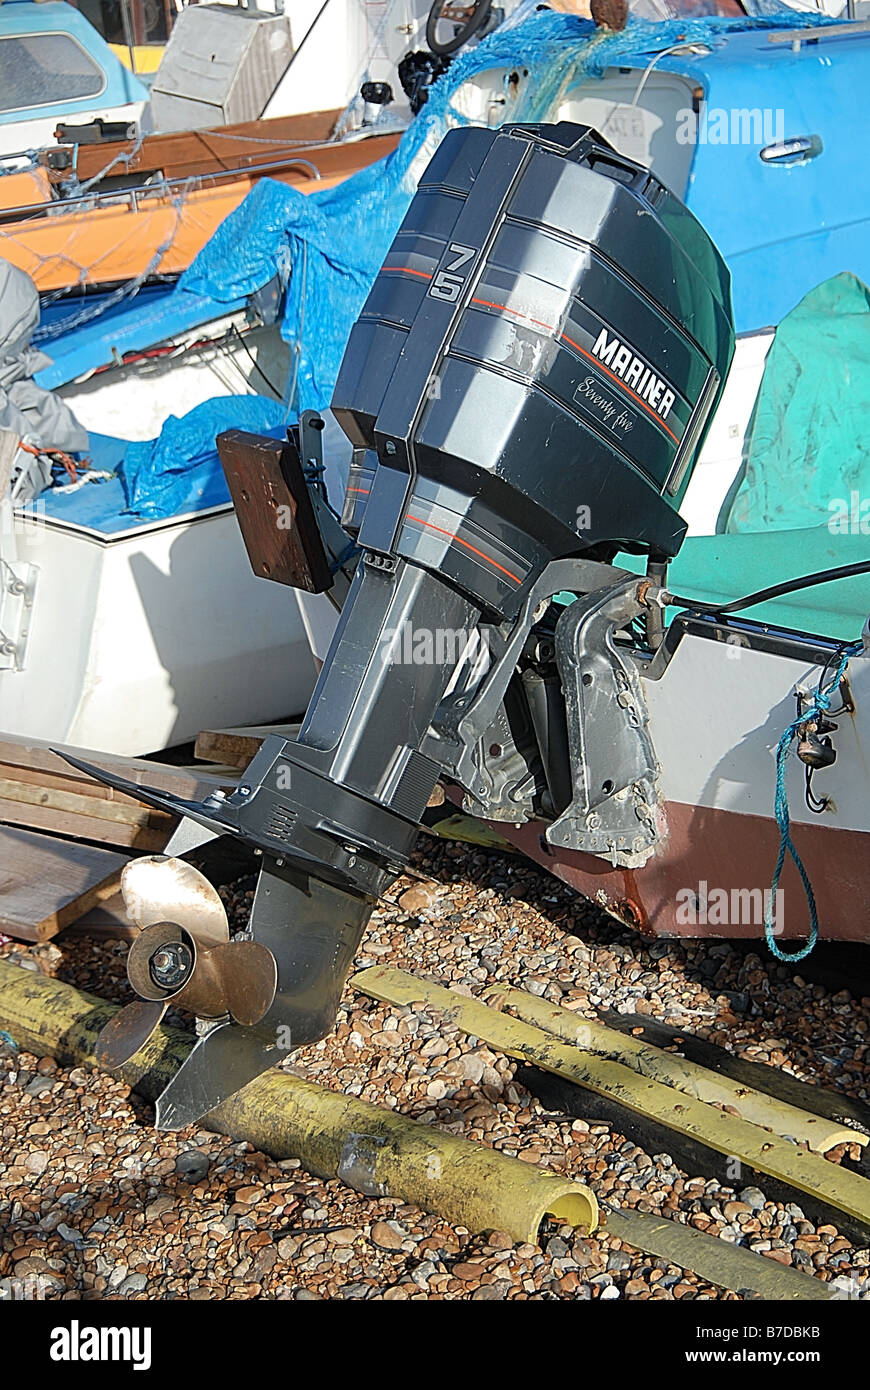 Mariner 75 Outboard Motor - Stock Image